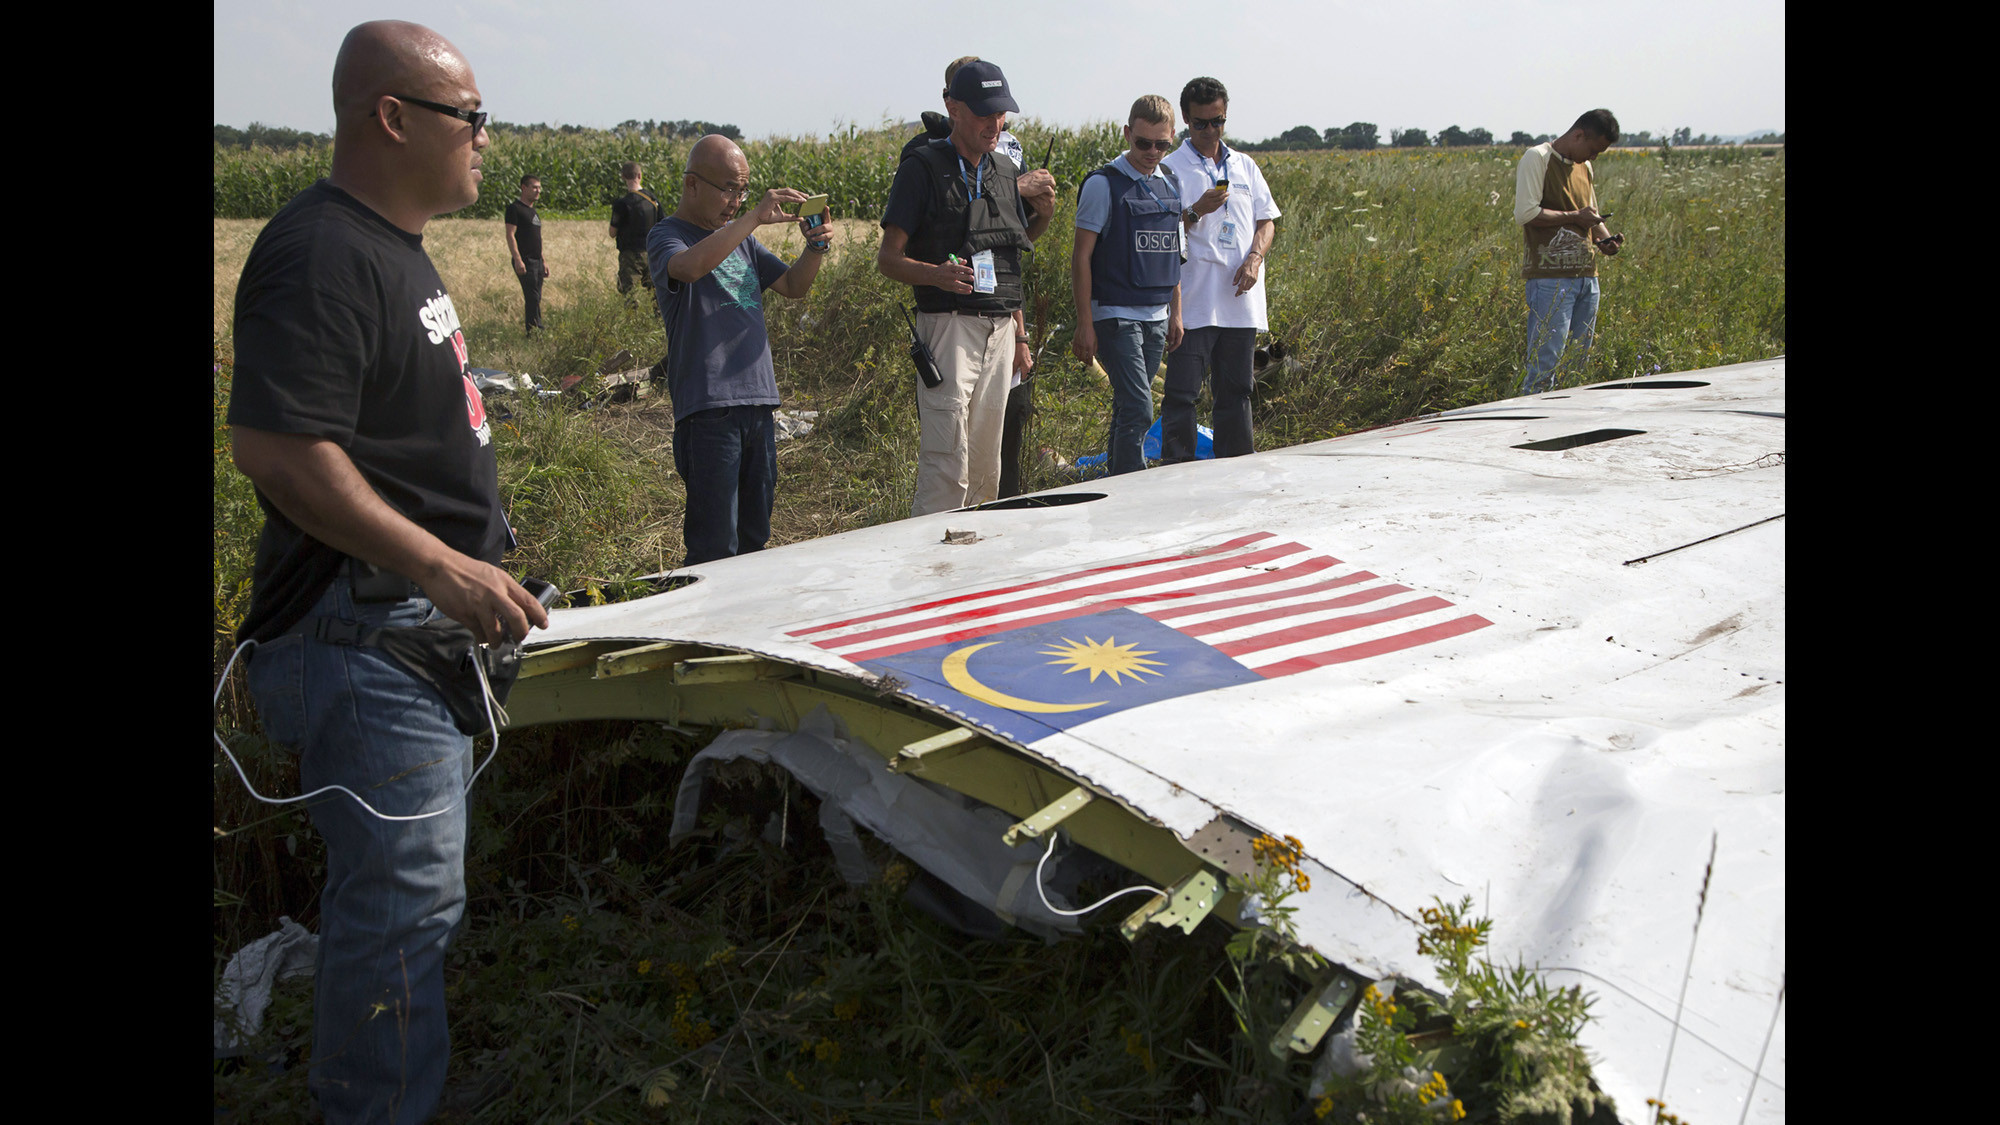 MH 17 - cover